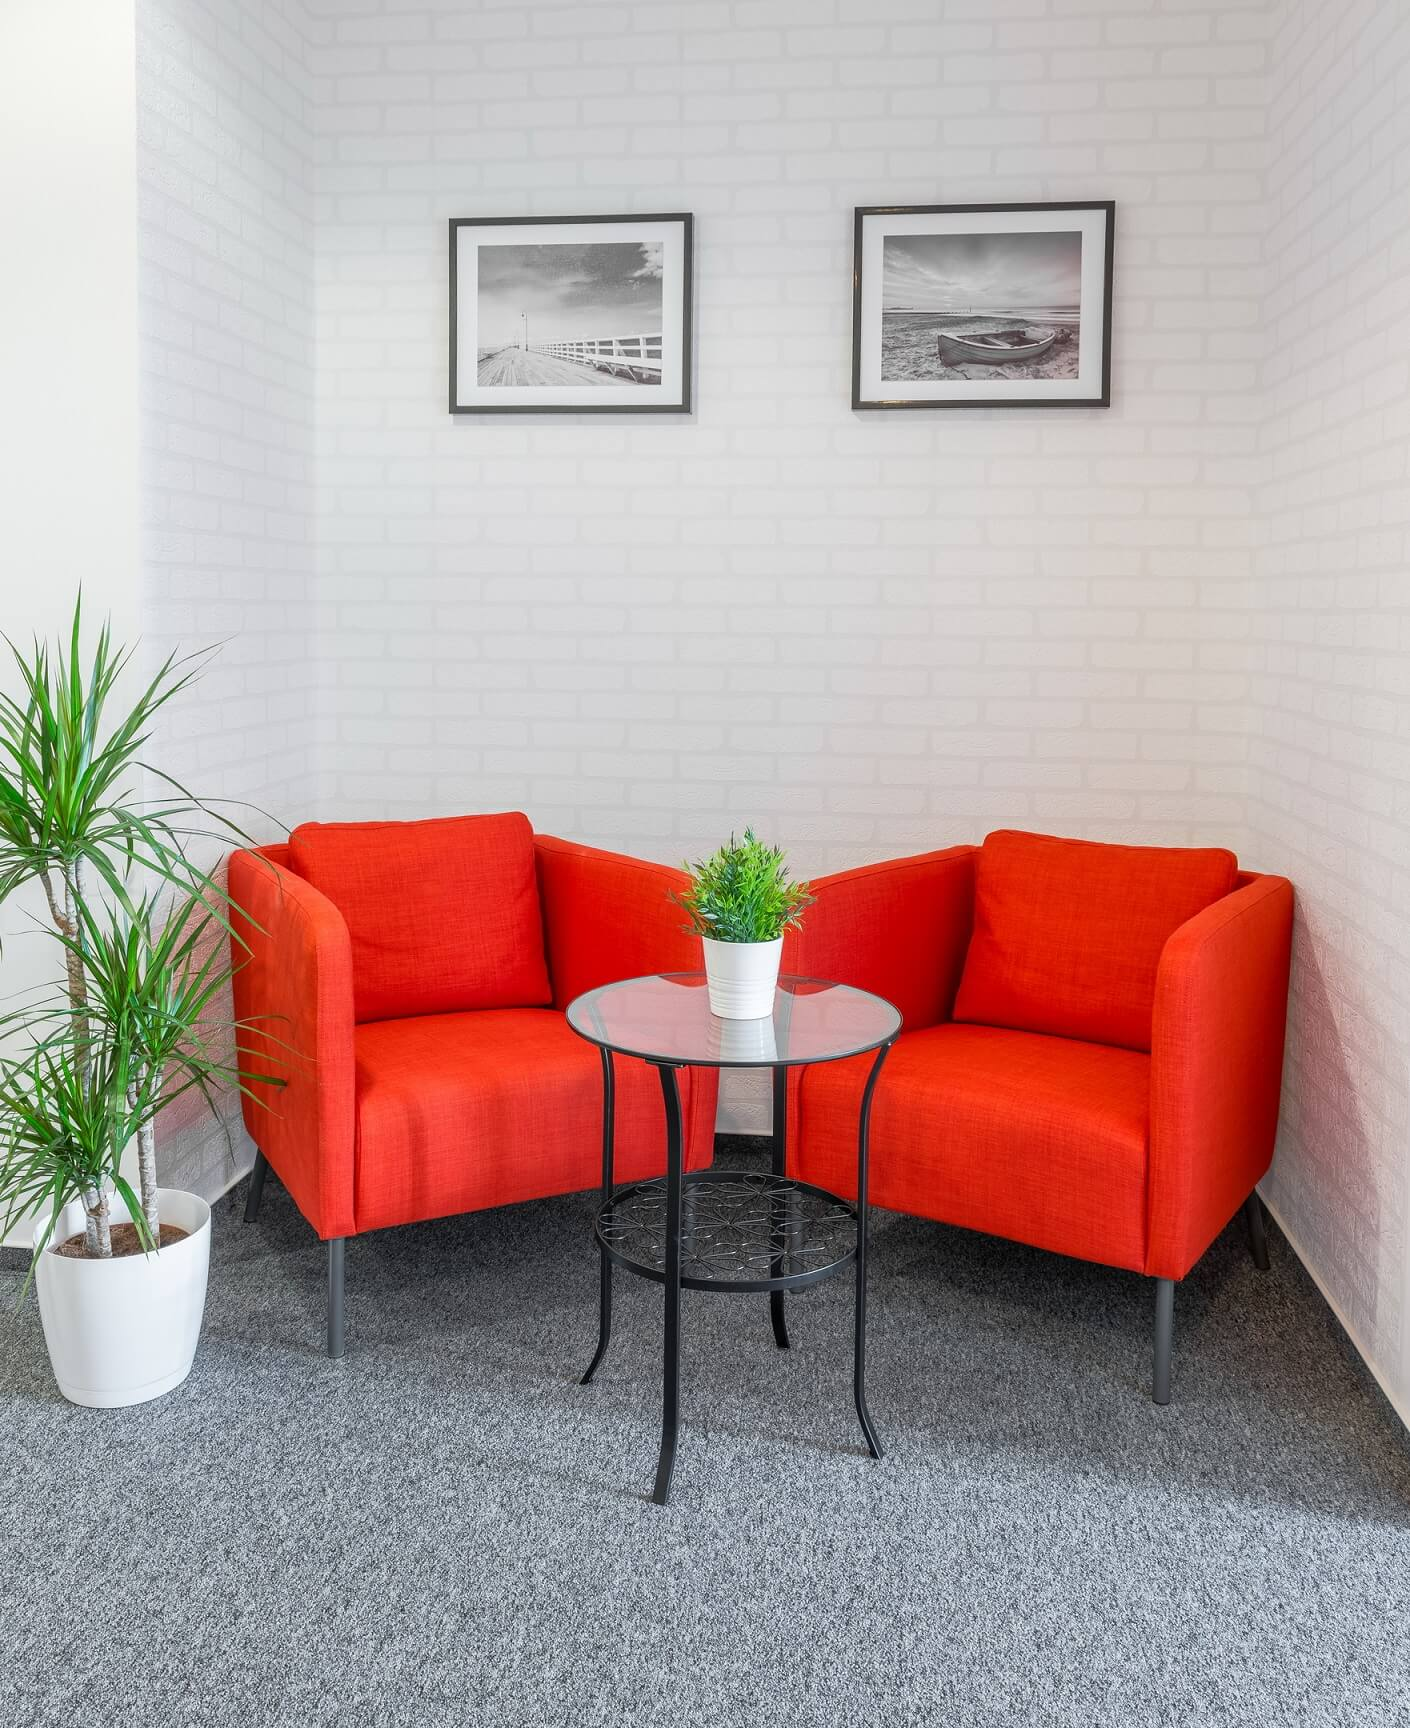 iDid Babka Tower - Fully Serviced Office - Warszawa